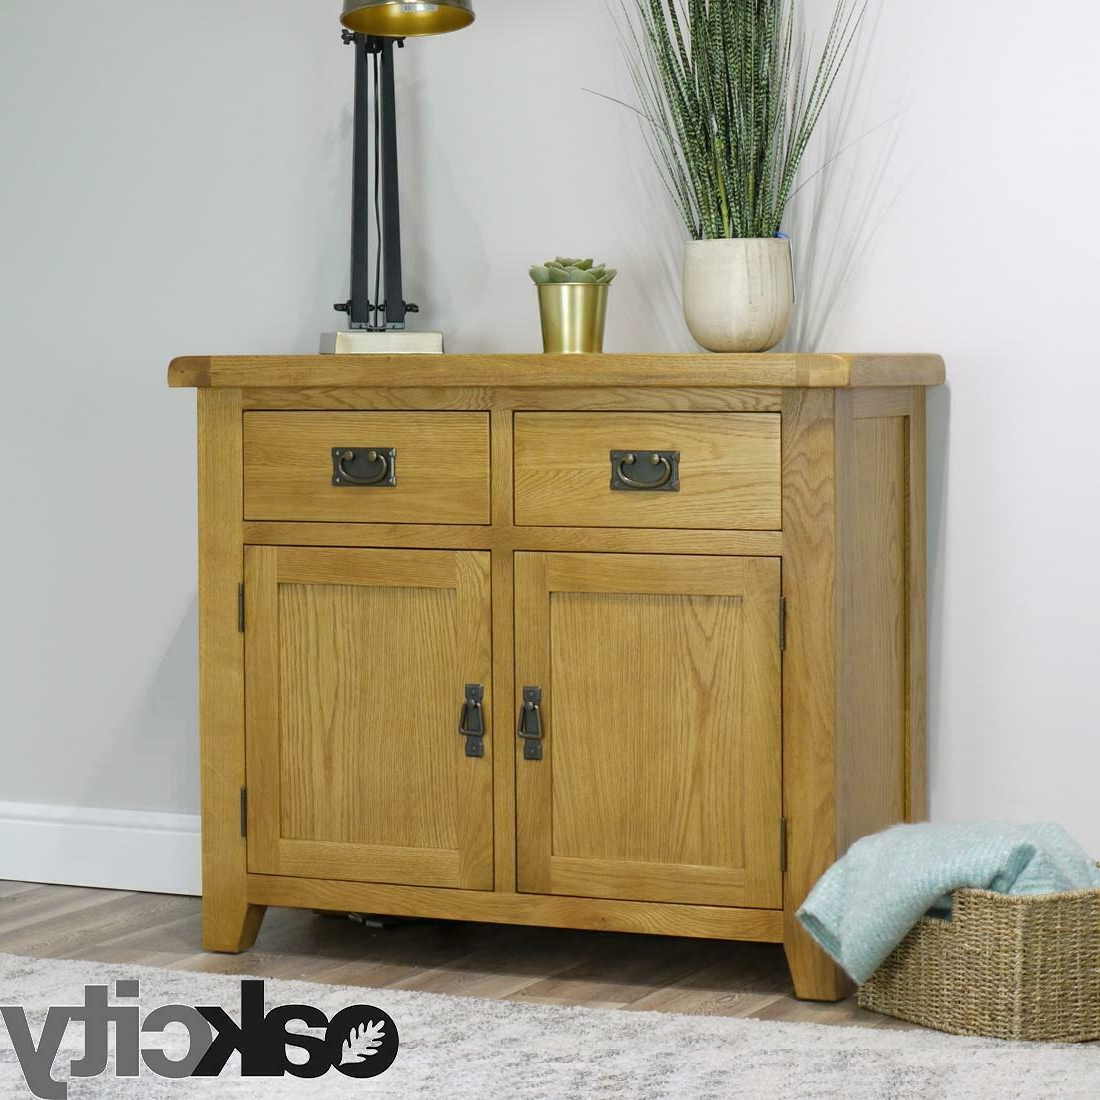 Norton Sideboards Intended For Most Popular Arklow Oak Small Sideboard / Fully Assembled 2 Door 2 Drawer Dining Room Storage (View 13 of 20)